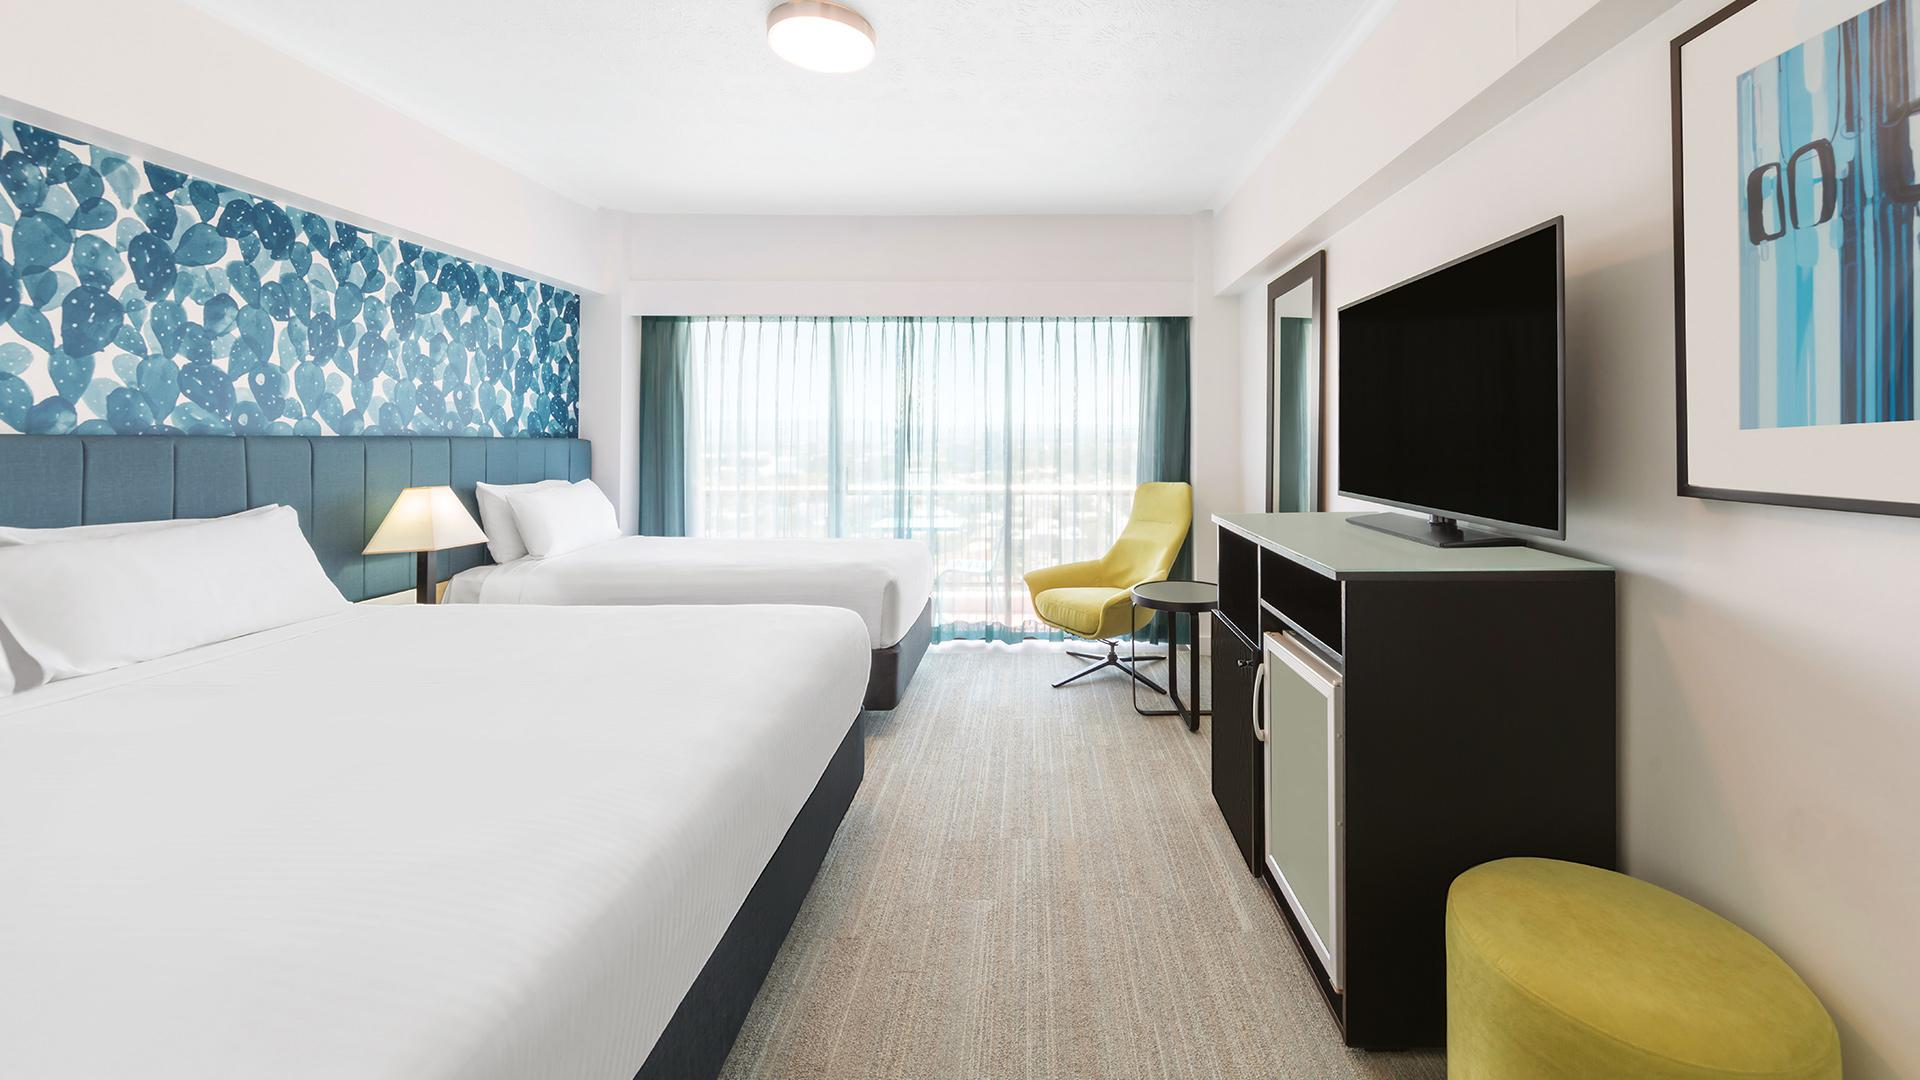 Riverview Twin Room image 1 at Vibe Hotel Gold Coast by City of Gold Coast, Queensland, Australia